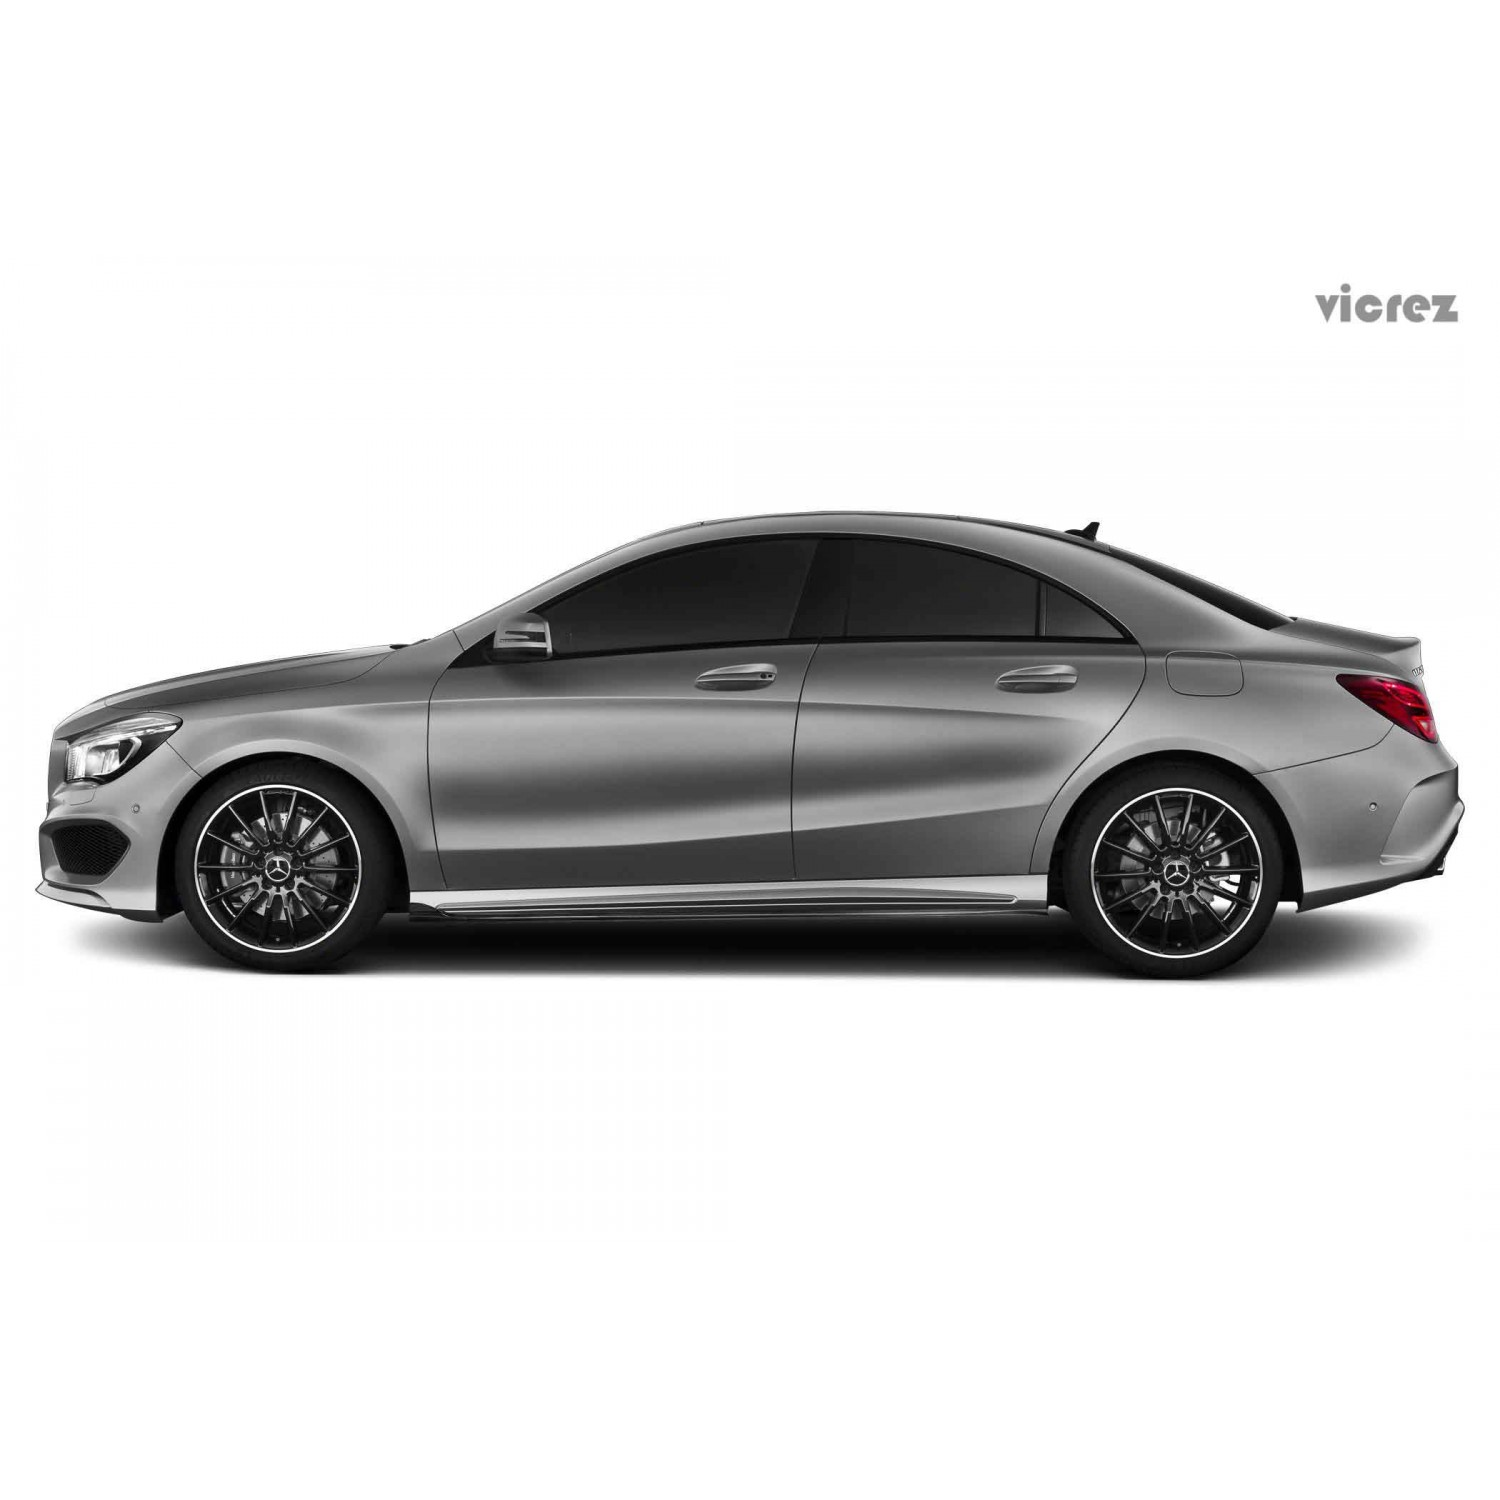 Vicrez mercedes benz cla class sport 2014 2016 carbon for Mercedes benz auto body